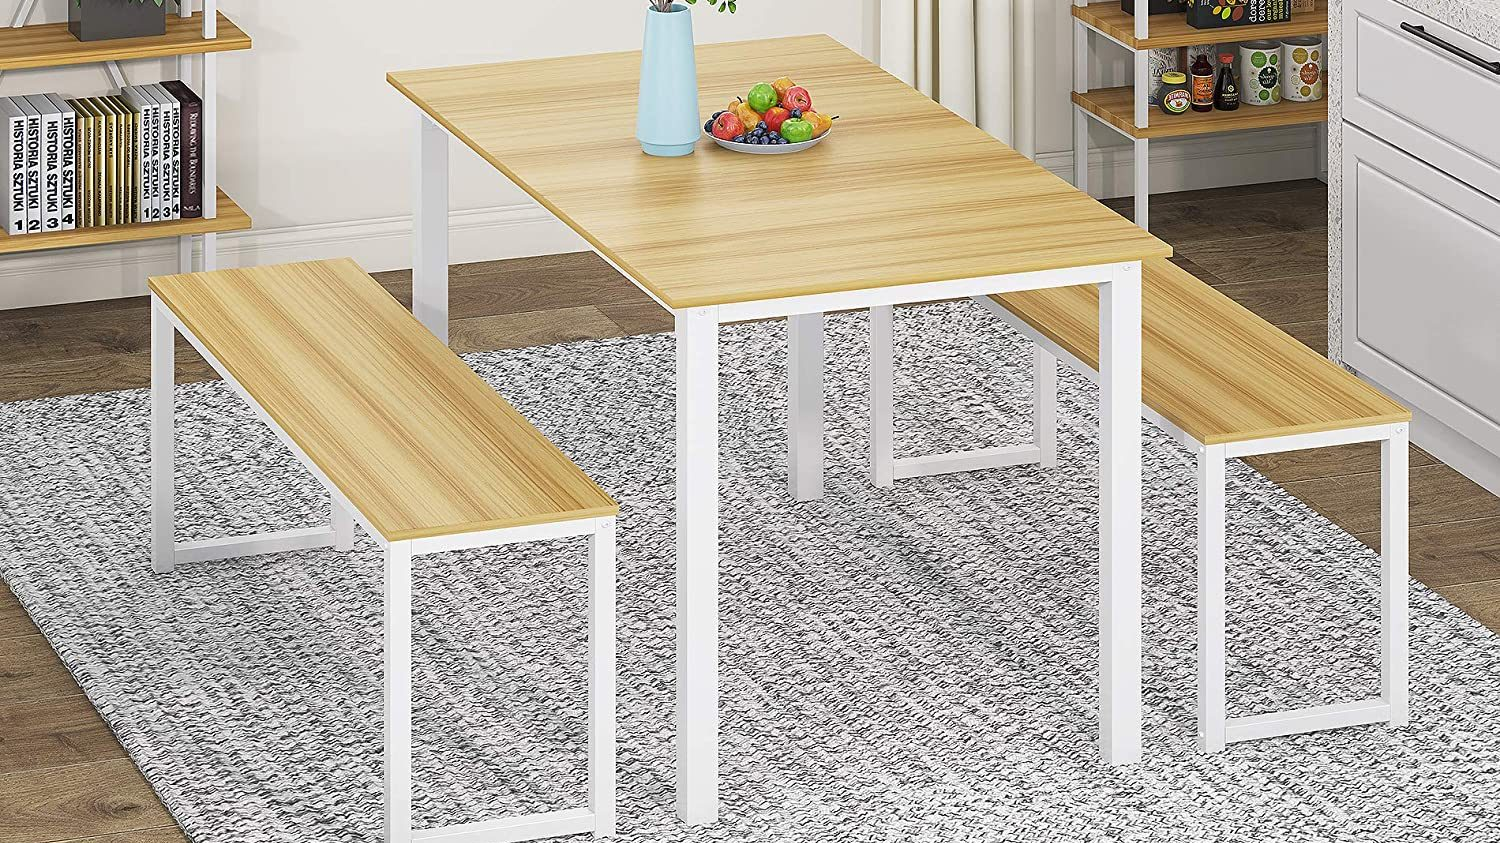 Best Bench and Table Set